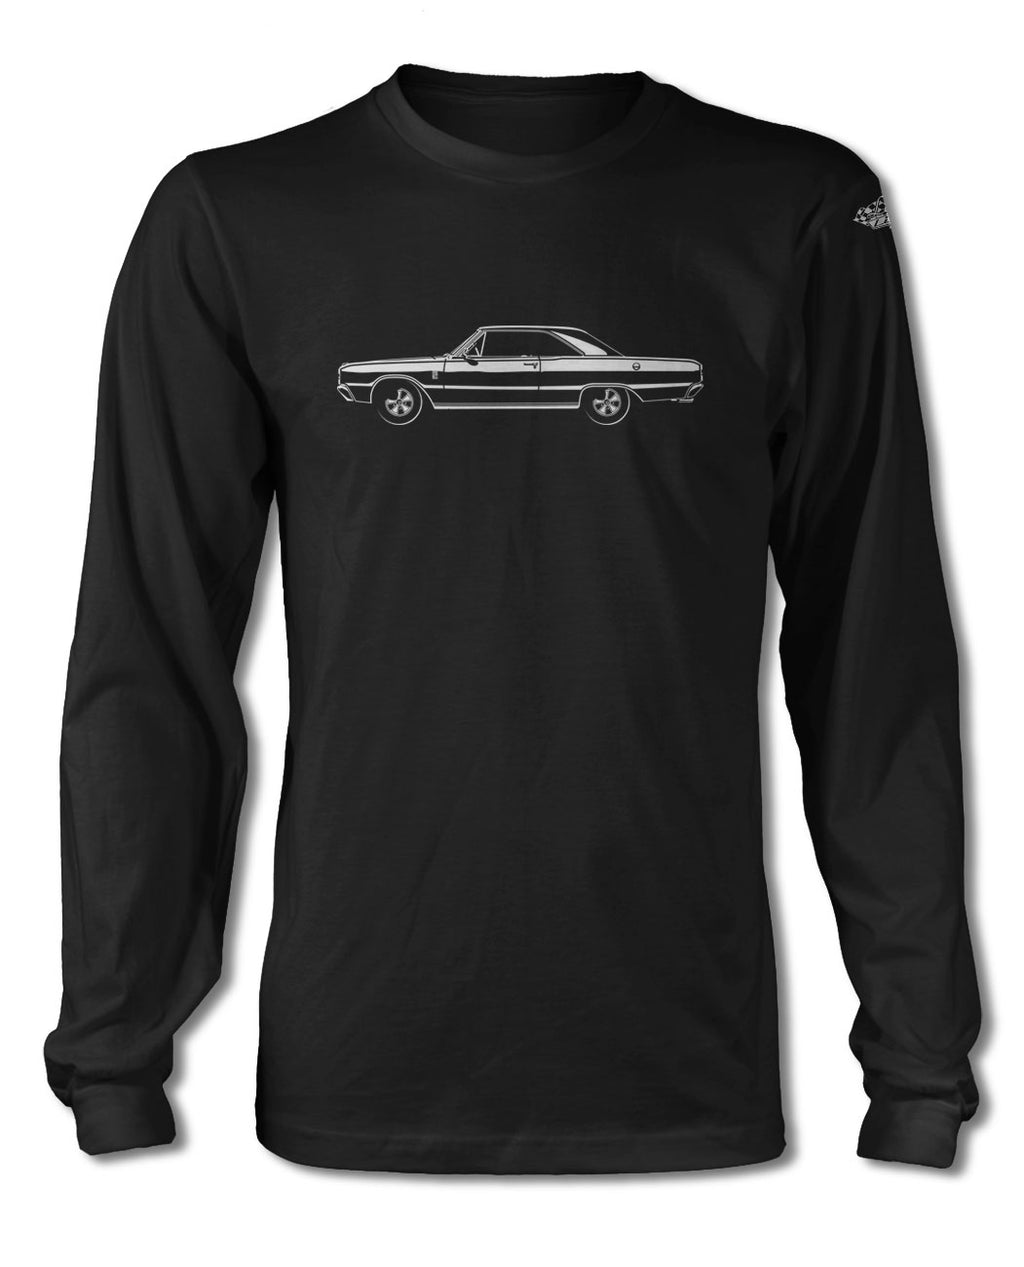 1967 Dodge Dart GT Coupe T-Shirt - Long Sleeves - Side View